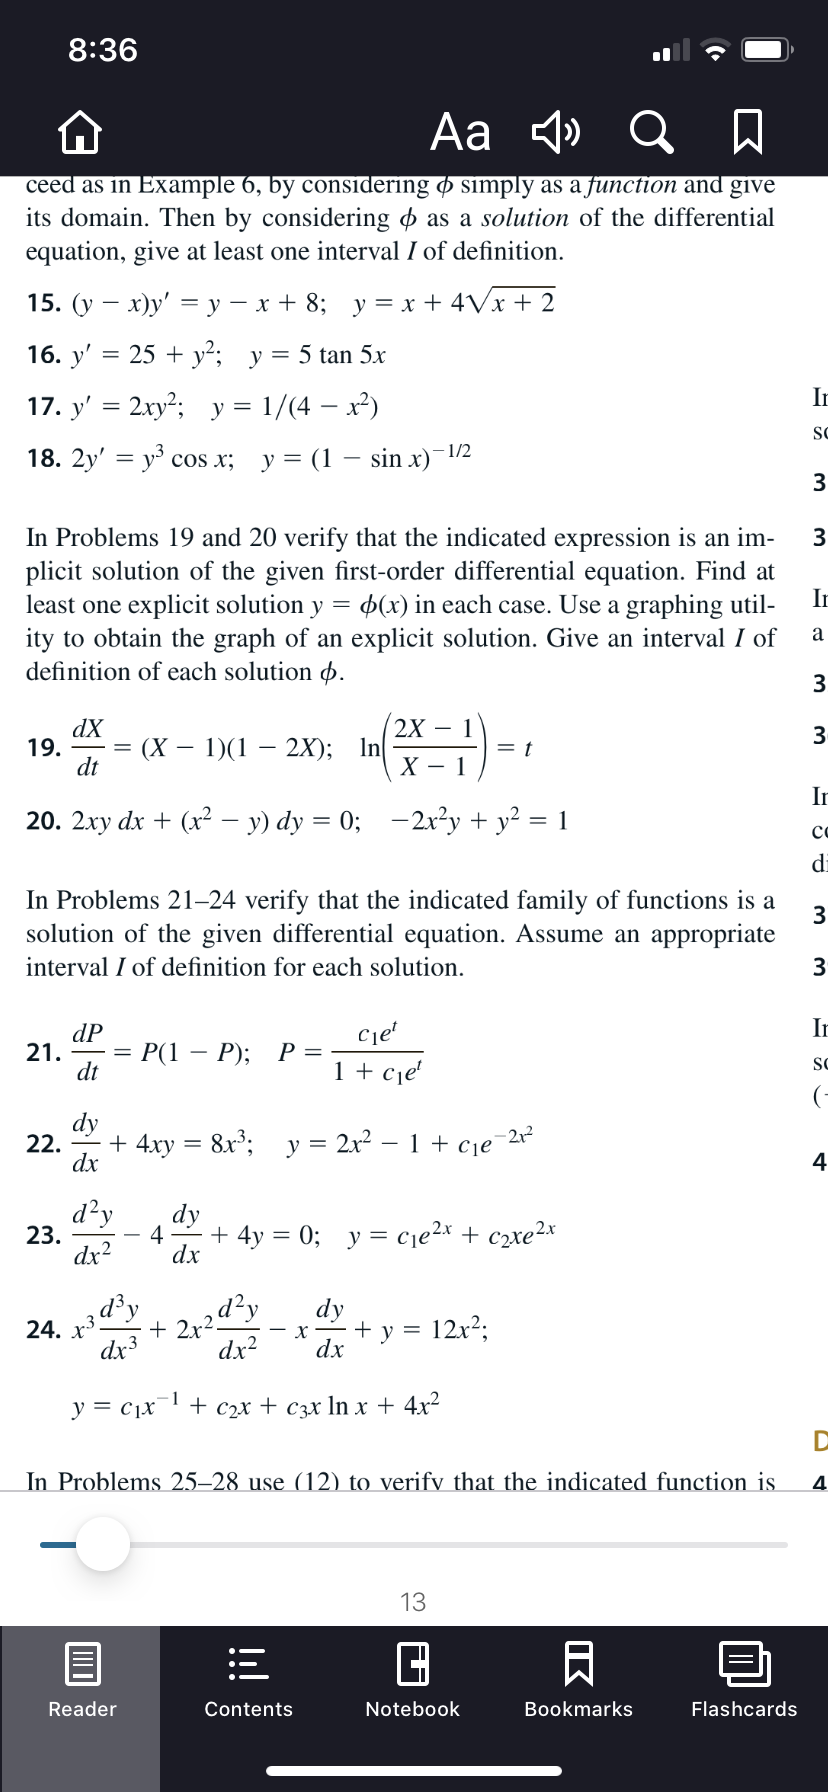 8:36 Aa 4» Q A ceed as in Example 6, by considering ø simply as a function and give its domain. Then by considering o as a solution of the differential equation, give at least one interval I of definition. 15. (у — х)у' —у — х+ 8; у%3Dх + 4Vx+ 2 16. y' = 25 + y²; y= 5 tan 5x In 17. y' = 2xy²; y = 1/(4 – x²) SC - 1/2 18. 2y' — уз сos x; у%3D (1 — sin x) 3 In Problems 19 and 20 verify that the indicated expression is an im- plicit solution of the given first-order differential equation. Find at least one explicit solution y = p(x) in each case. Use a graphing util- ity to obtain the graph of an explicit solution. Give an interval I of definition of each solution p. In 3 2X – 1 dX 19. dt (X – 1)(1 2X); In In 20. 2xy dx + (x2² – y) dy = 0; –2x²y + y² = 1 co di In Problems 21–24 verify that the indicated family of functions is a solution of the given differential equation. Assume an appropriate interval I of definition for each solution. 3 In dP 21. dt Ce' P(1 - P); 1 + cje' SC (- dy 22. - + 4xy dx 8x; y = 2x² – 1 + cje -212 4 d?y dy 4 + 4y = 0; y = cje2x + c2xe2x 23. dx2 dx * 2r2d?, dx? d³y dy 12x2; 24. dx3 + y х dx 1 y = c1x + С2х + Сэх In x + 4x2 In Problems 25–28 use (12) to verify that the indicated function is 4 13 Reader Notebook Bookmarks Flashcards Contents IK ШО